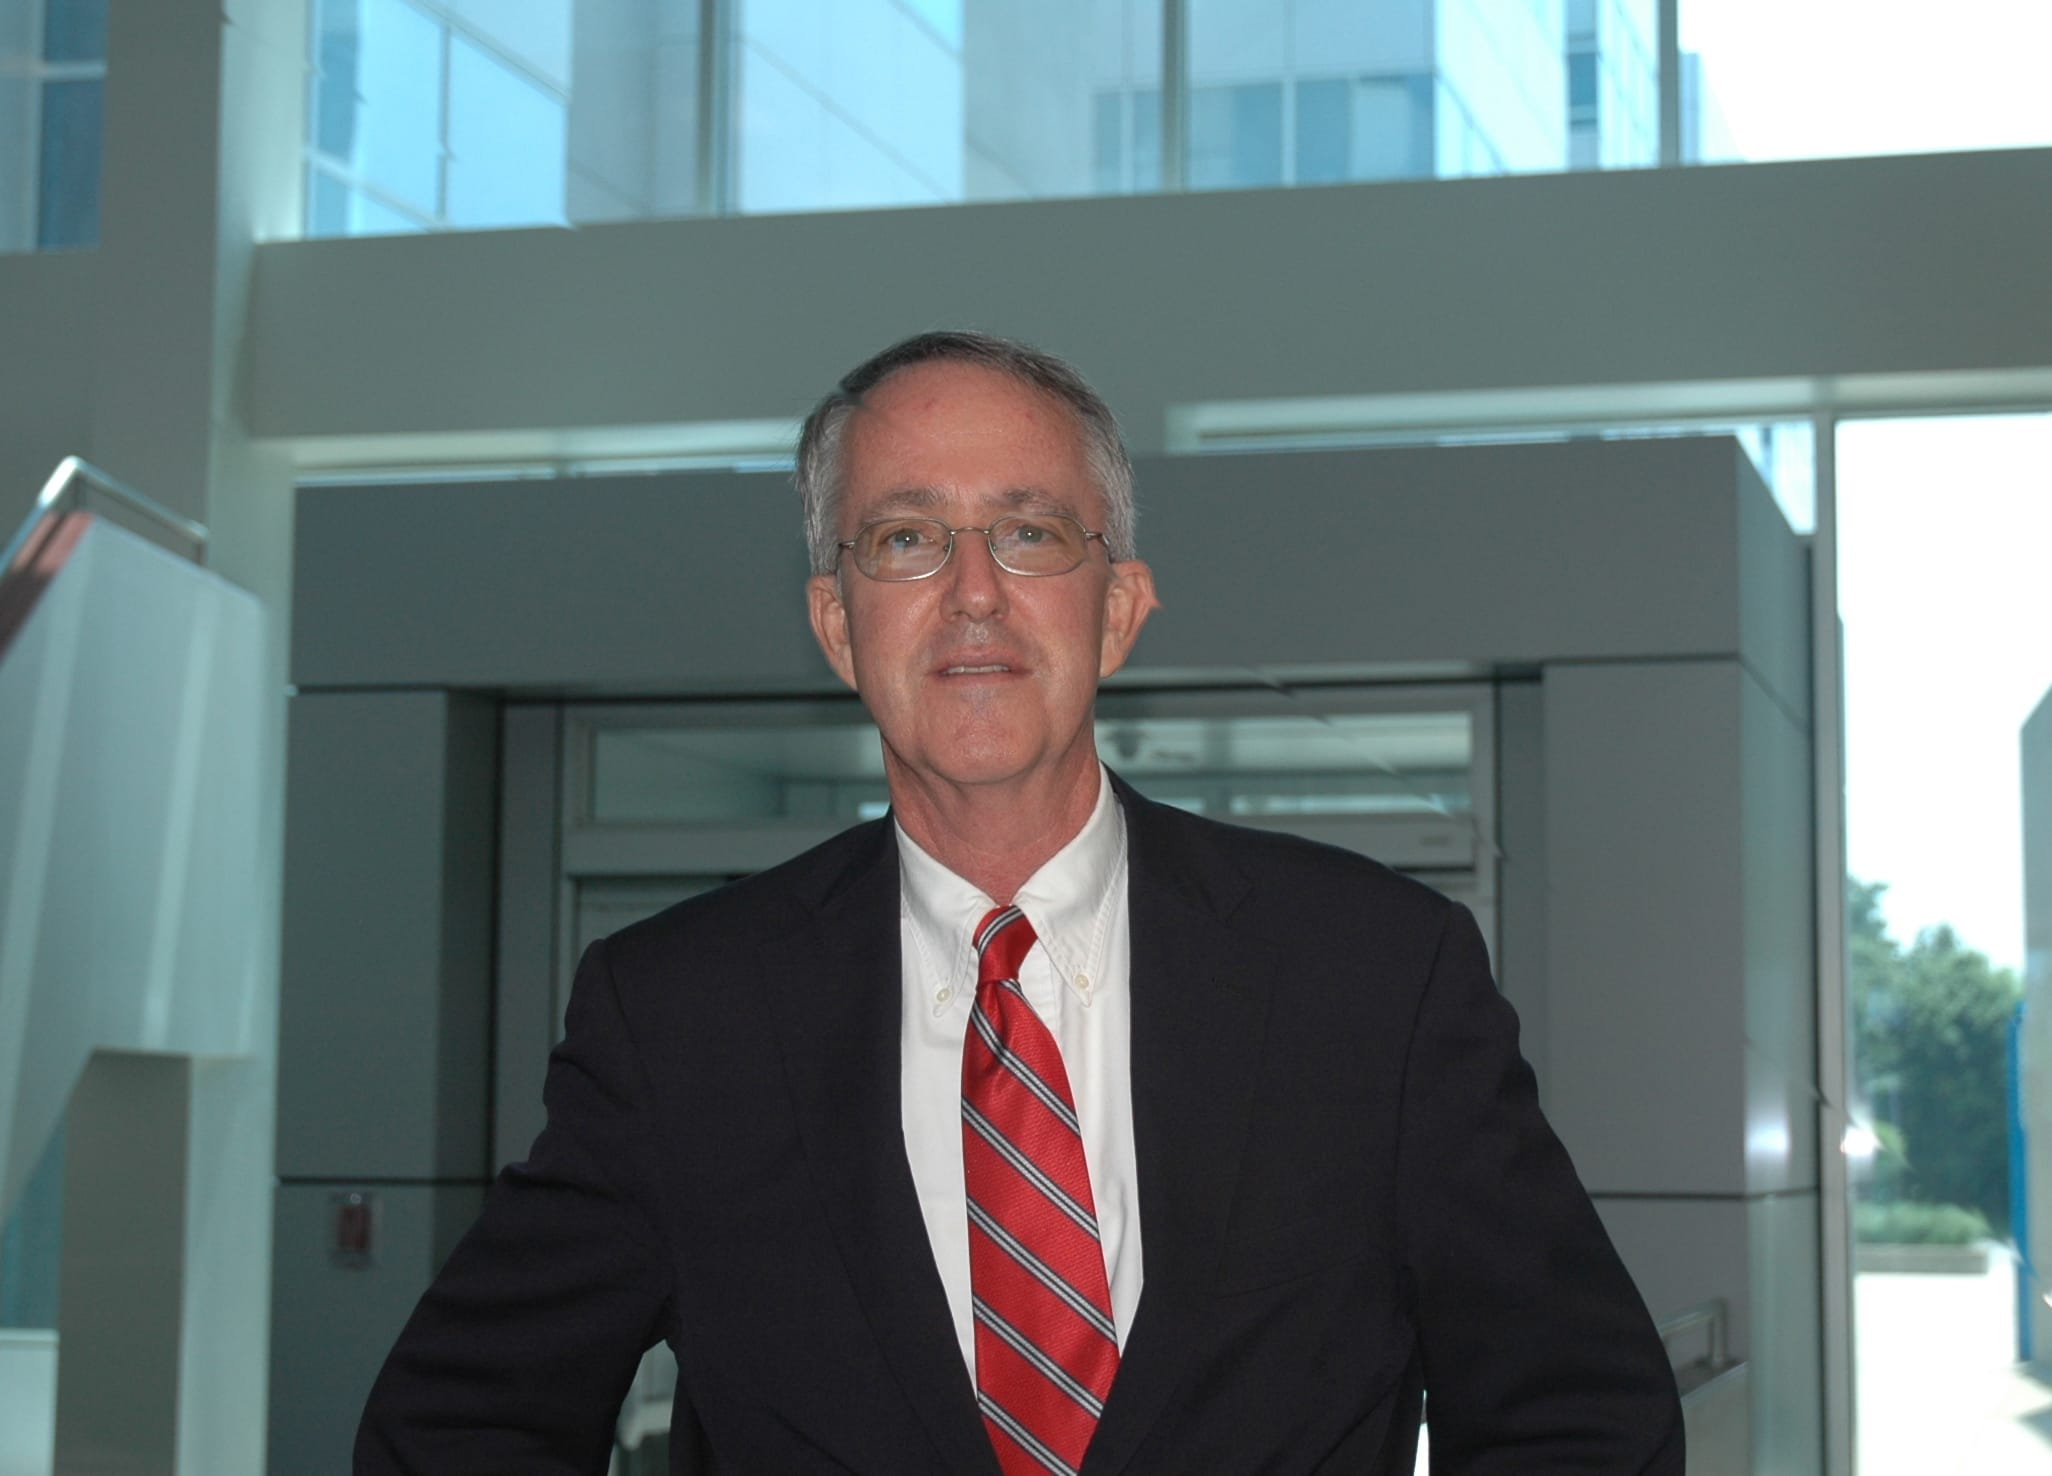 Fred Rooney, Director of new International Center for Post-Graduate Development & Justice